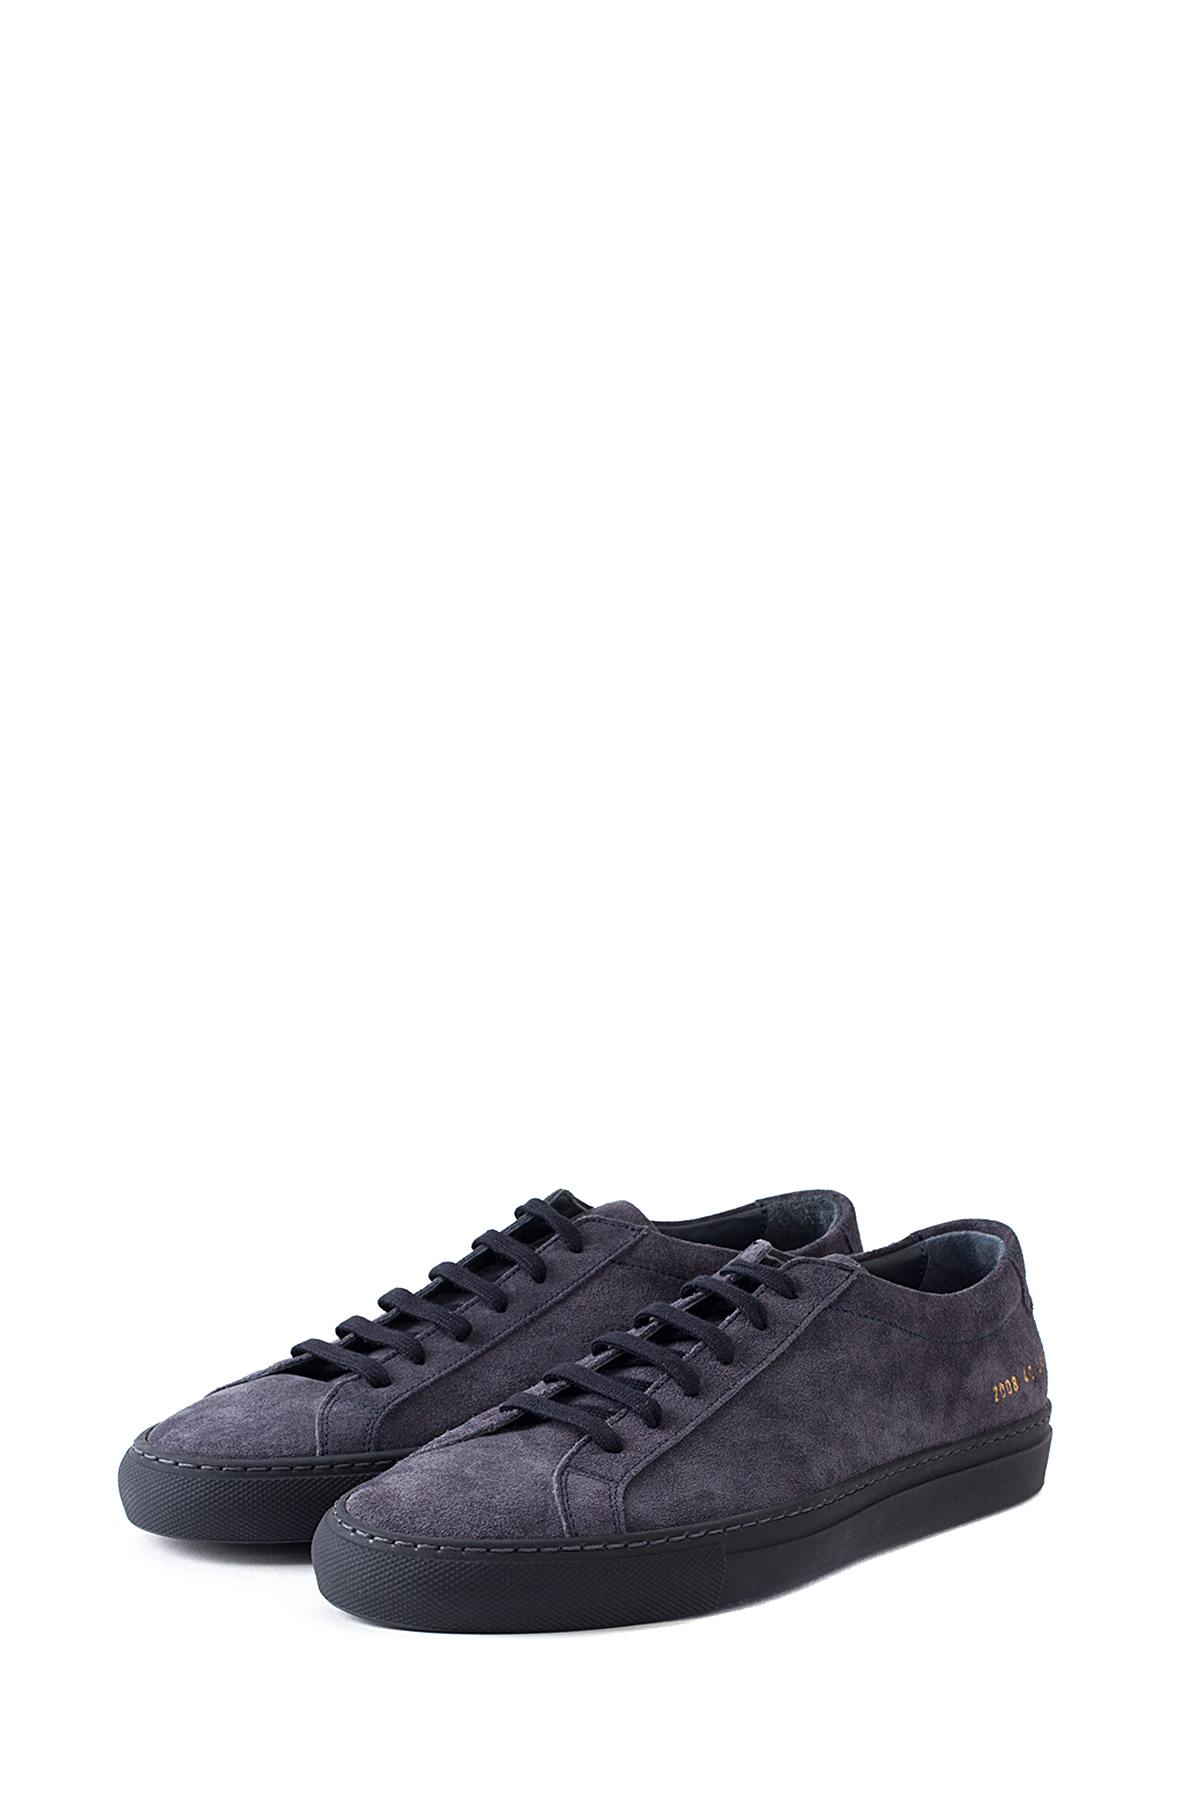 Common Projects : Original Achilles Low in Suede (Navy)